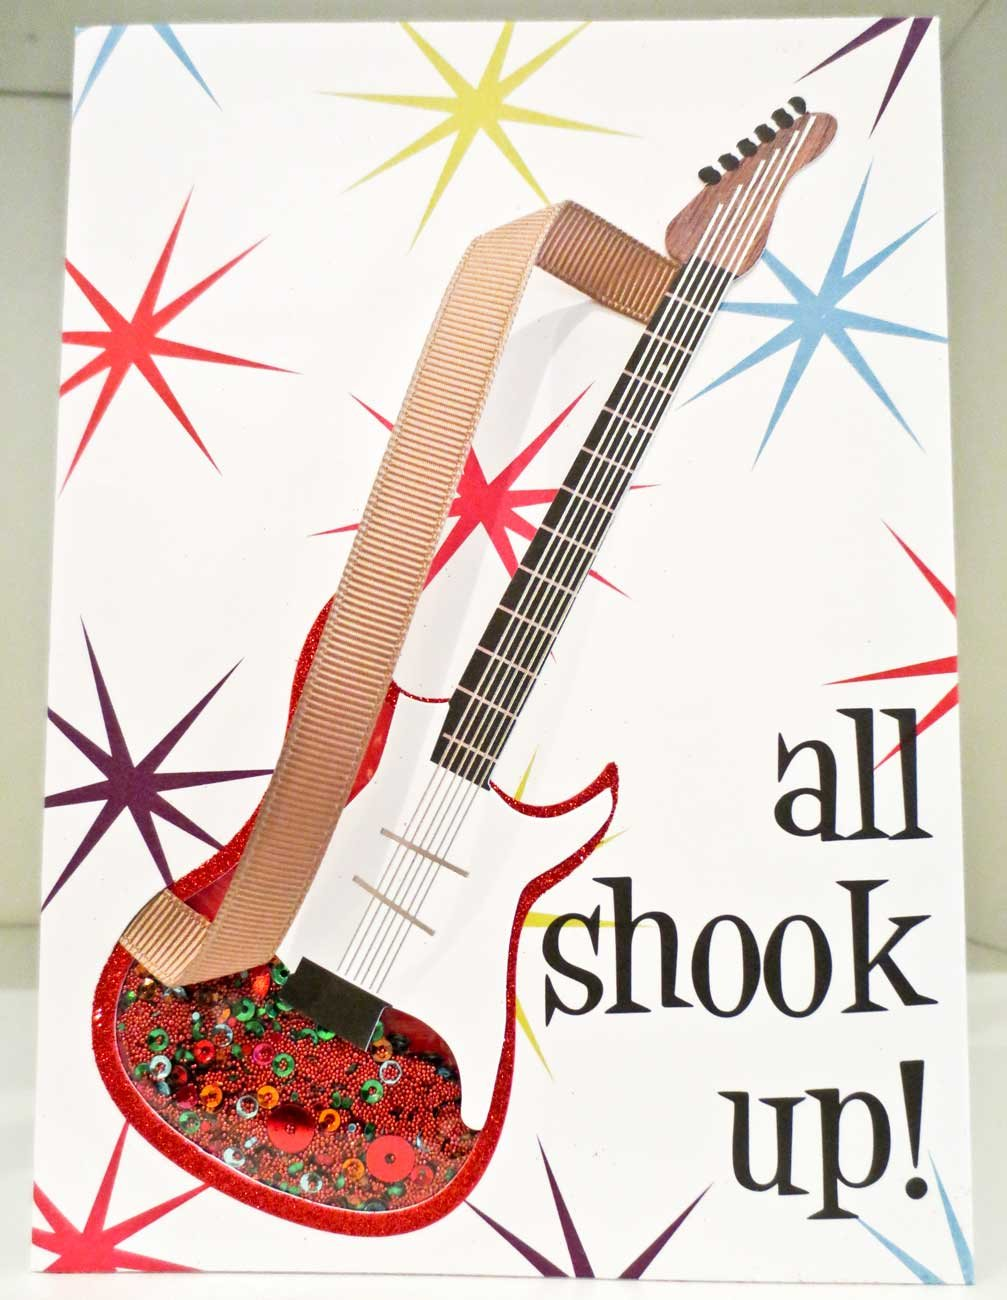 Amazon Meri All Shook Up Guitar Happy Birthday Card With